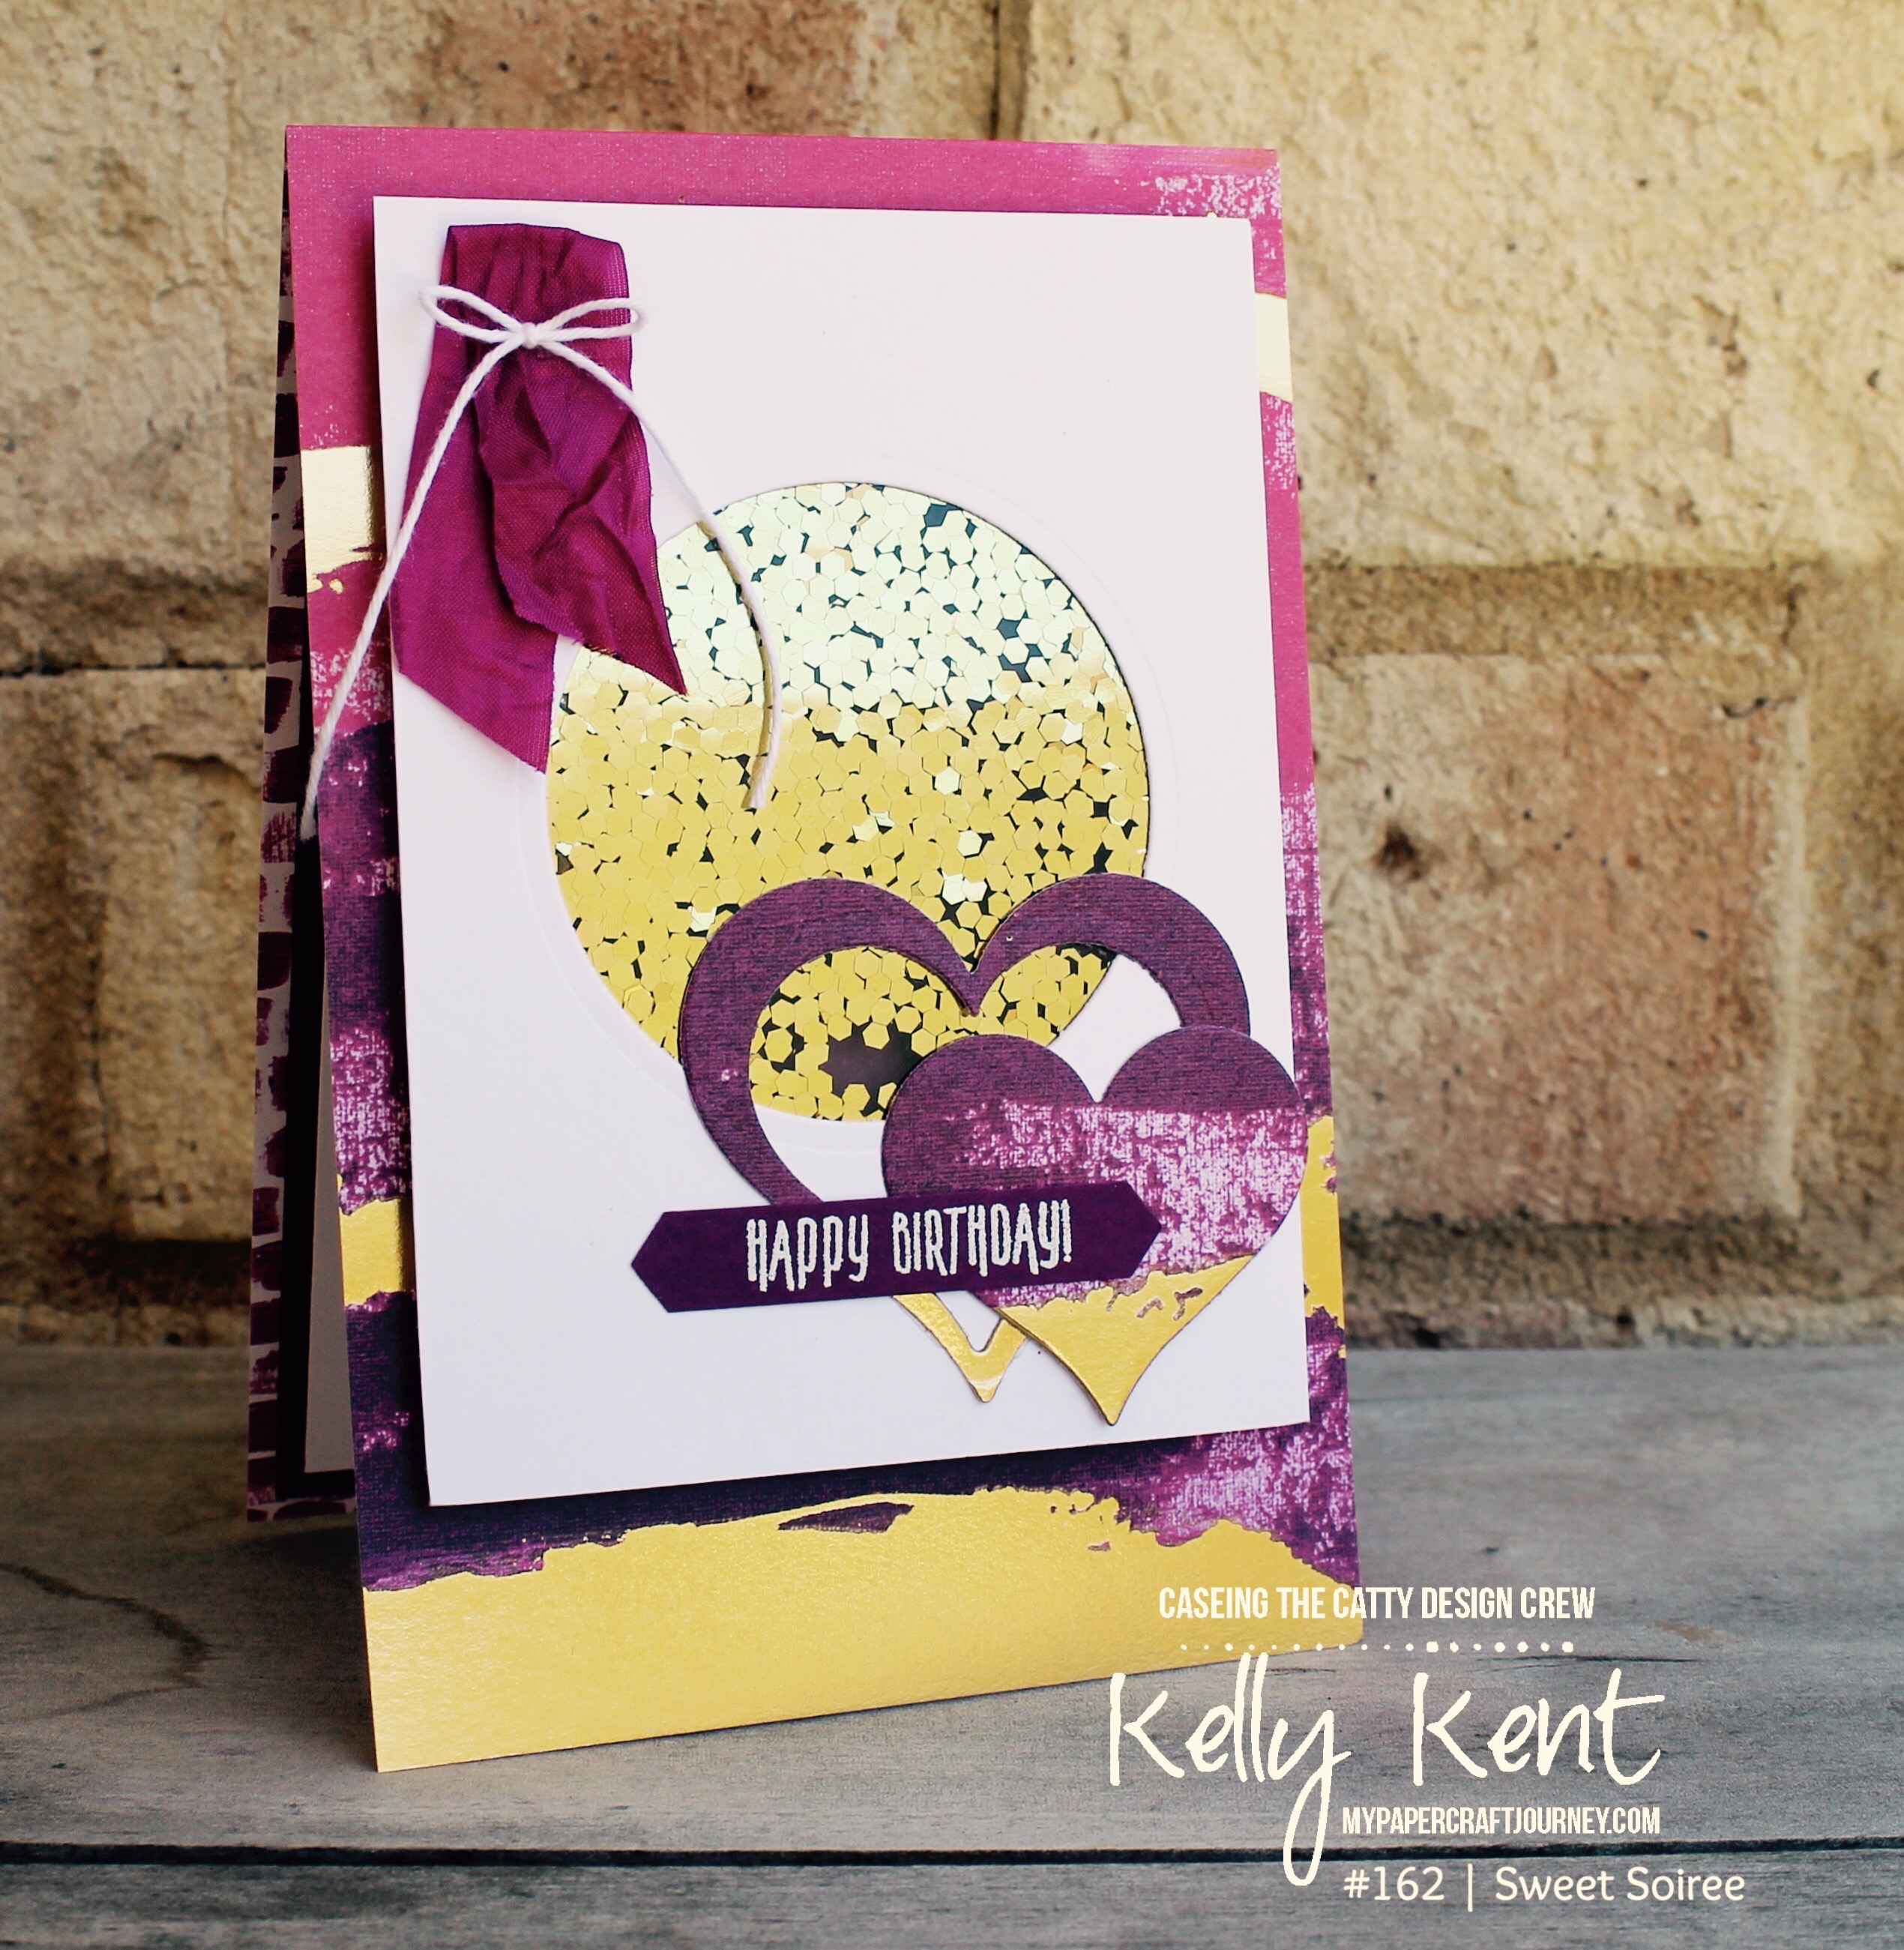 CASEing the Catty #162 Painted with Love | kelly kent